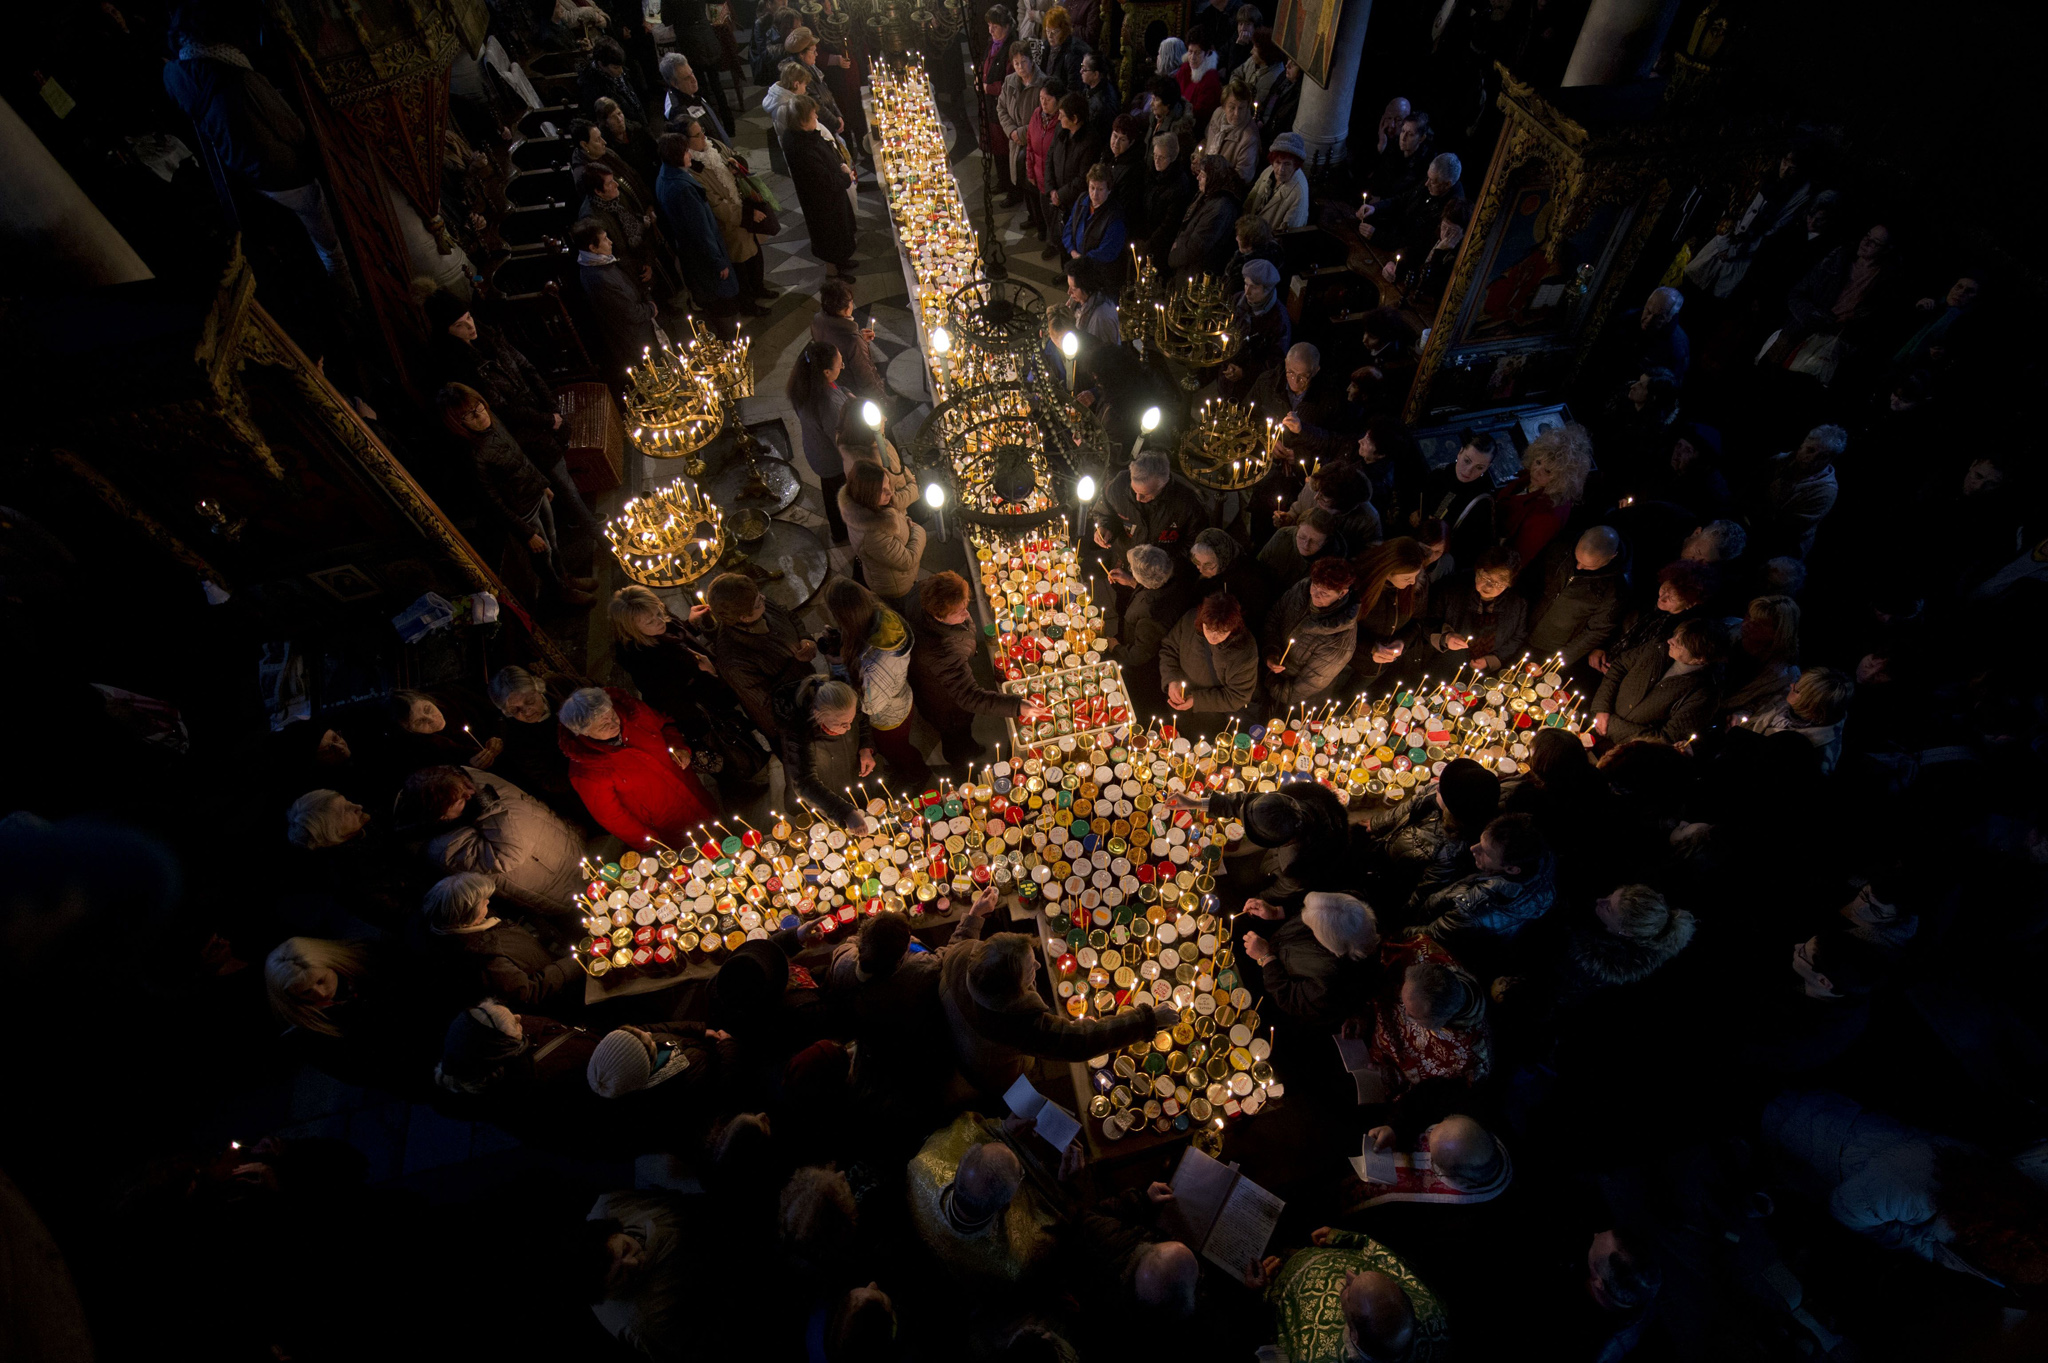 Believers pray around a cross-shaped platform covered with candles placed in jars of honey during a ceremony marking the day of Saint Haralam